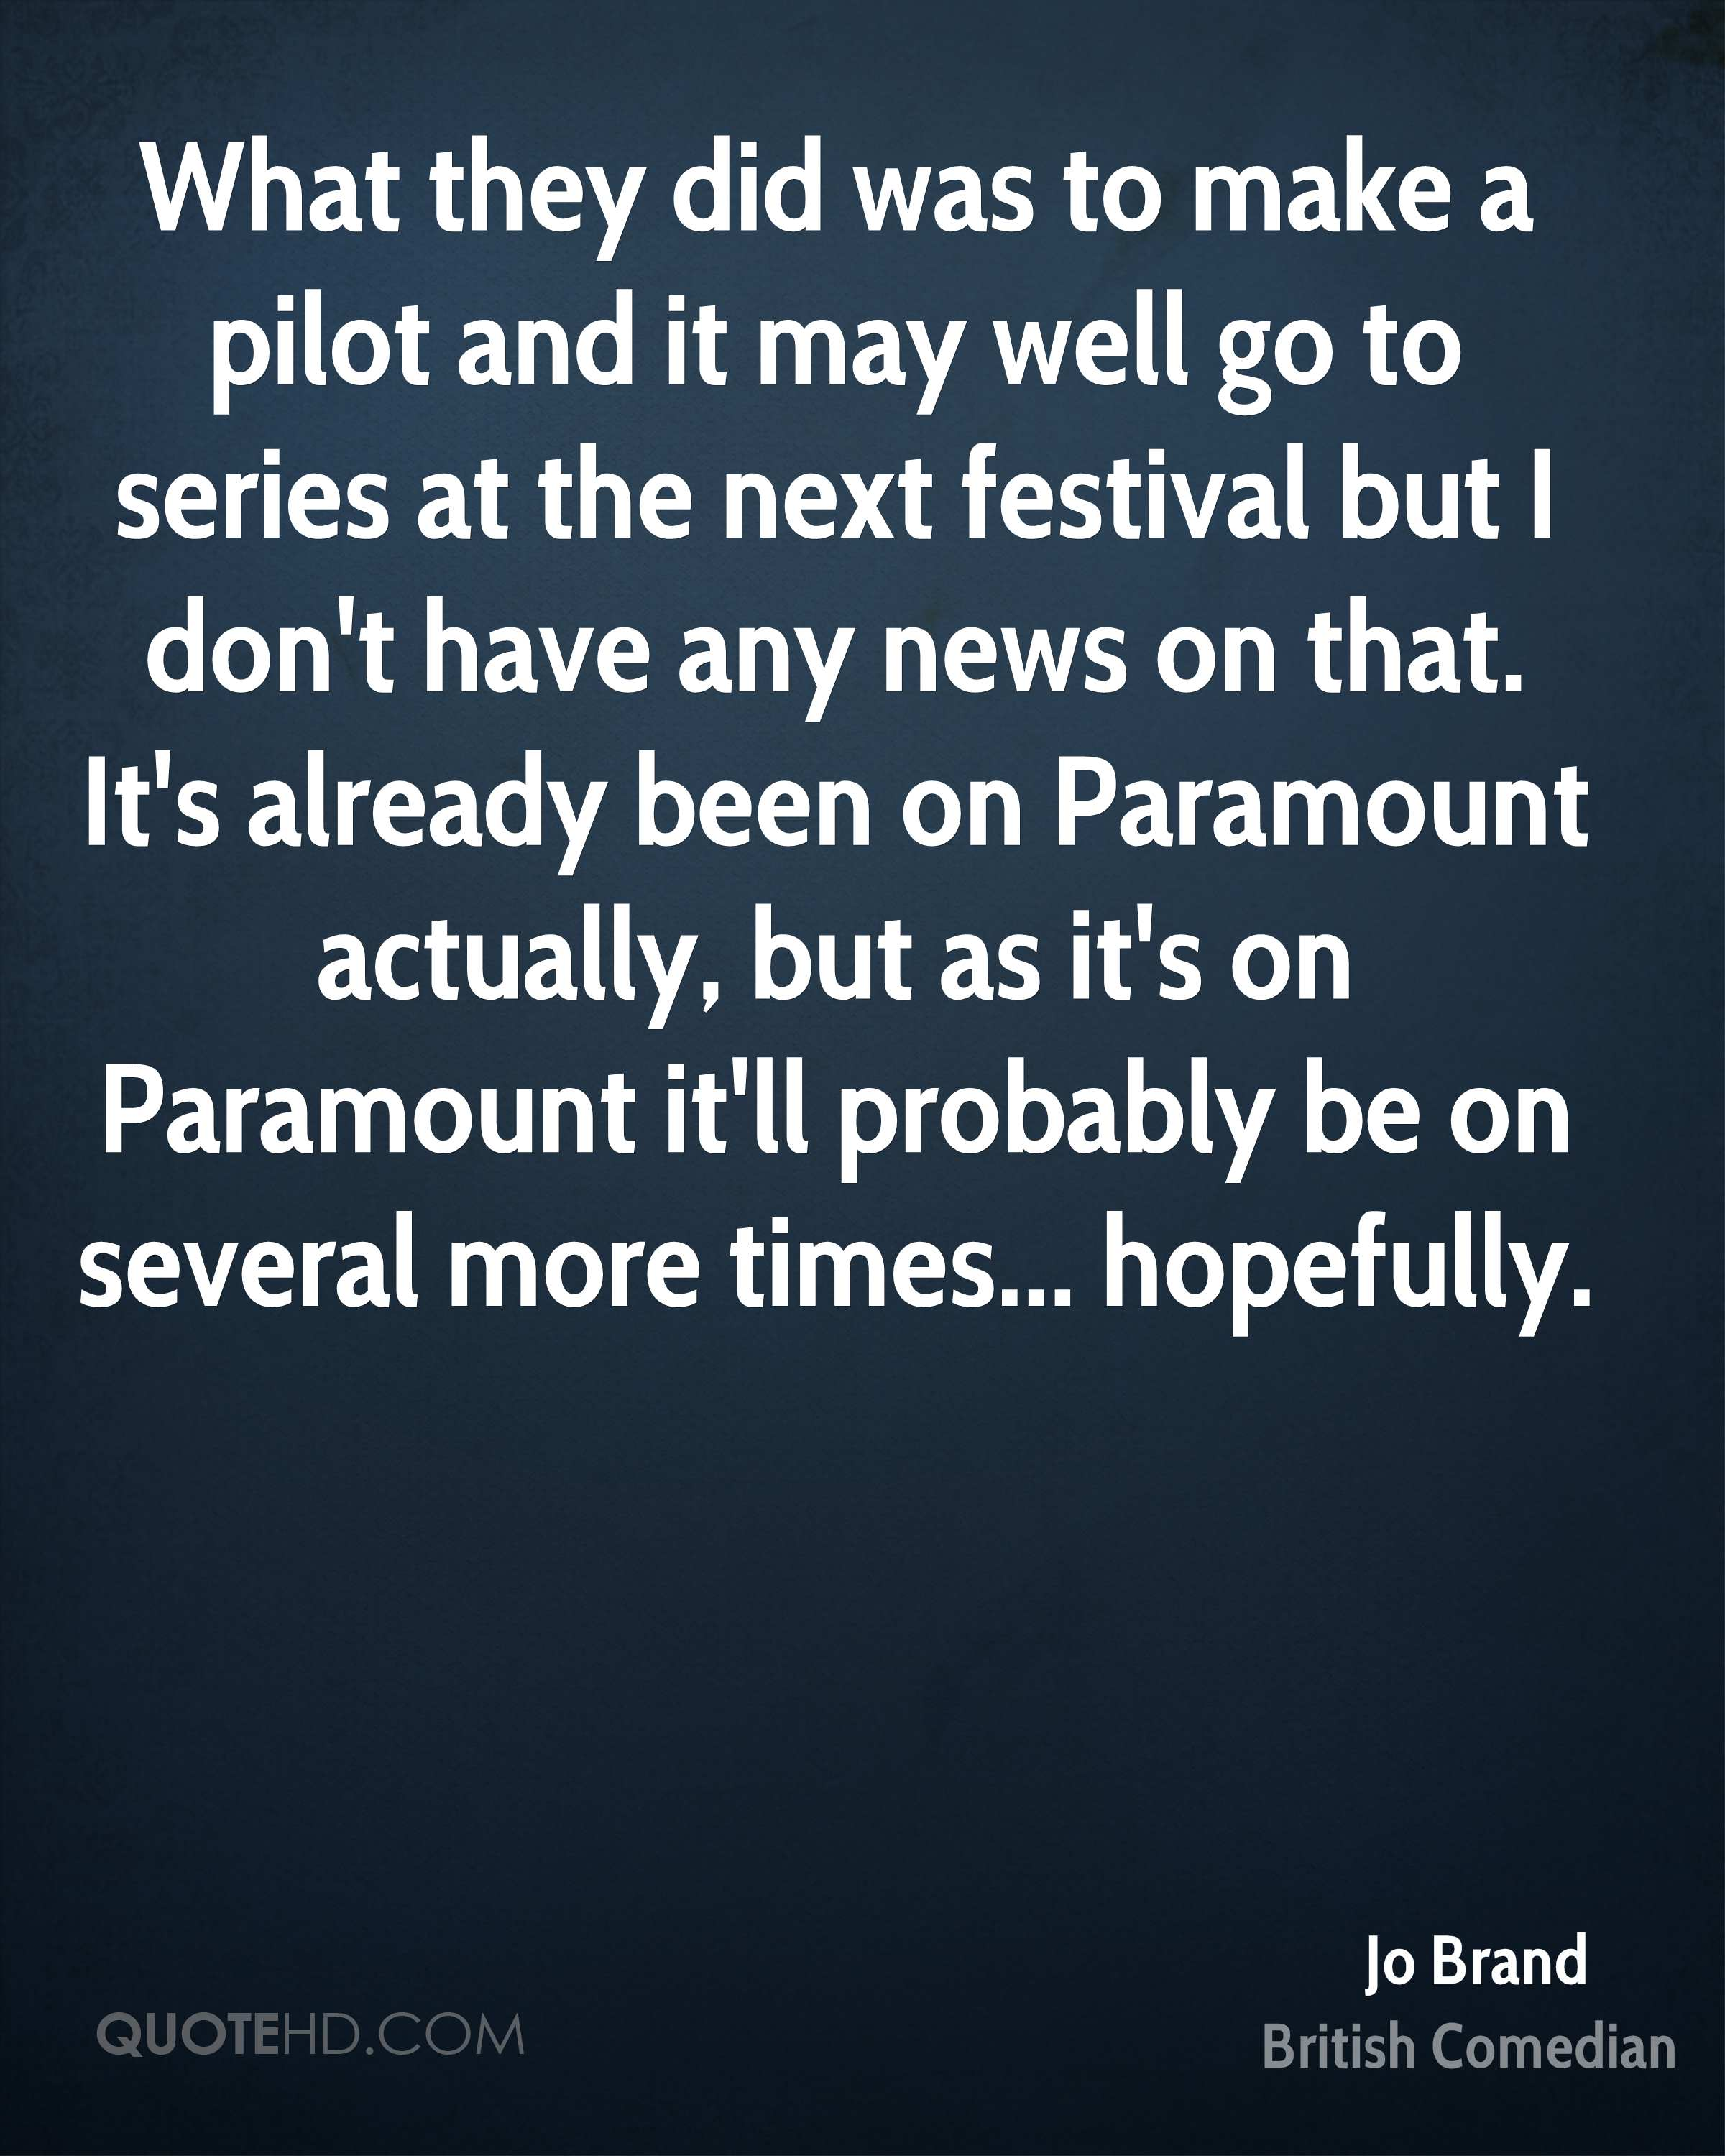 What they did was to make a pilot and it may well go to series at the next festival but I don't have any news on that. It's already been on Paramount actually, but as it's on Paramount it'll probably be on several more times... hopefully.